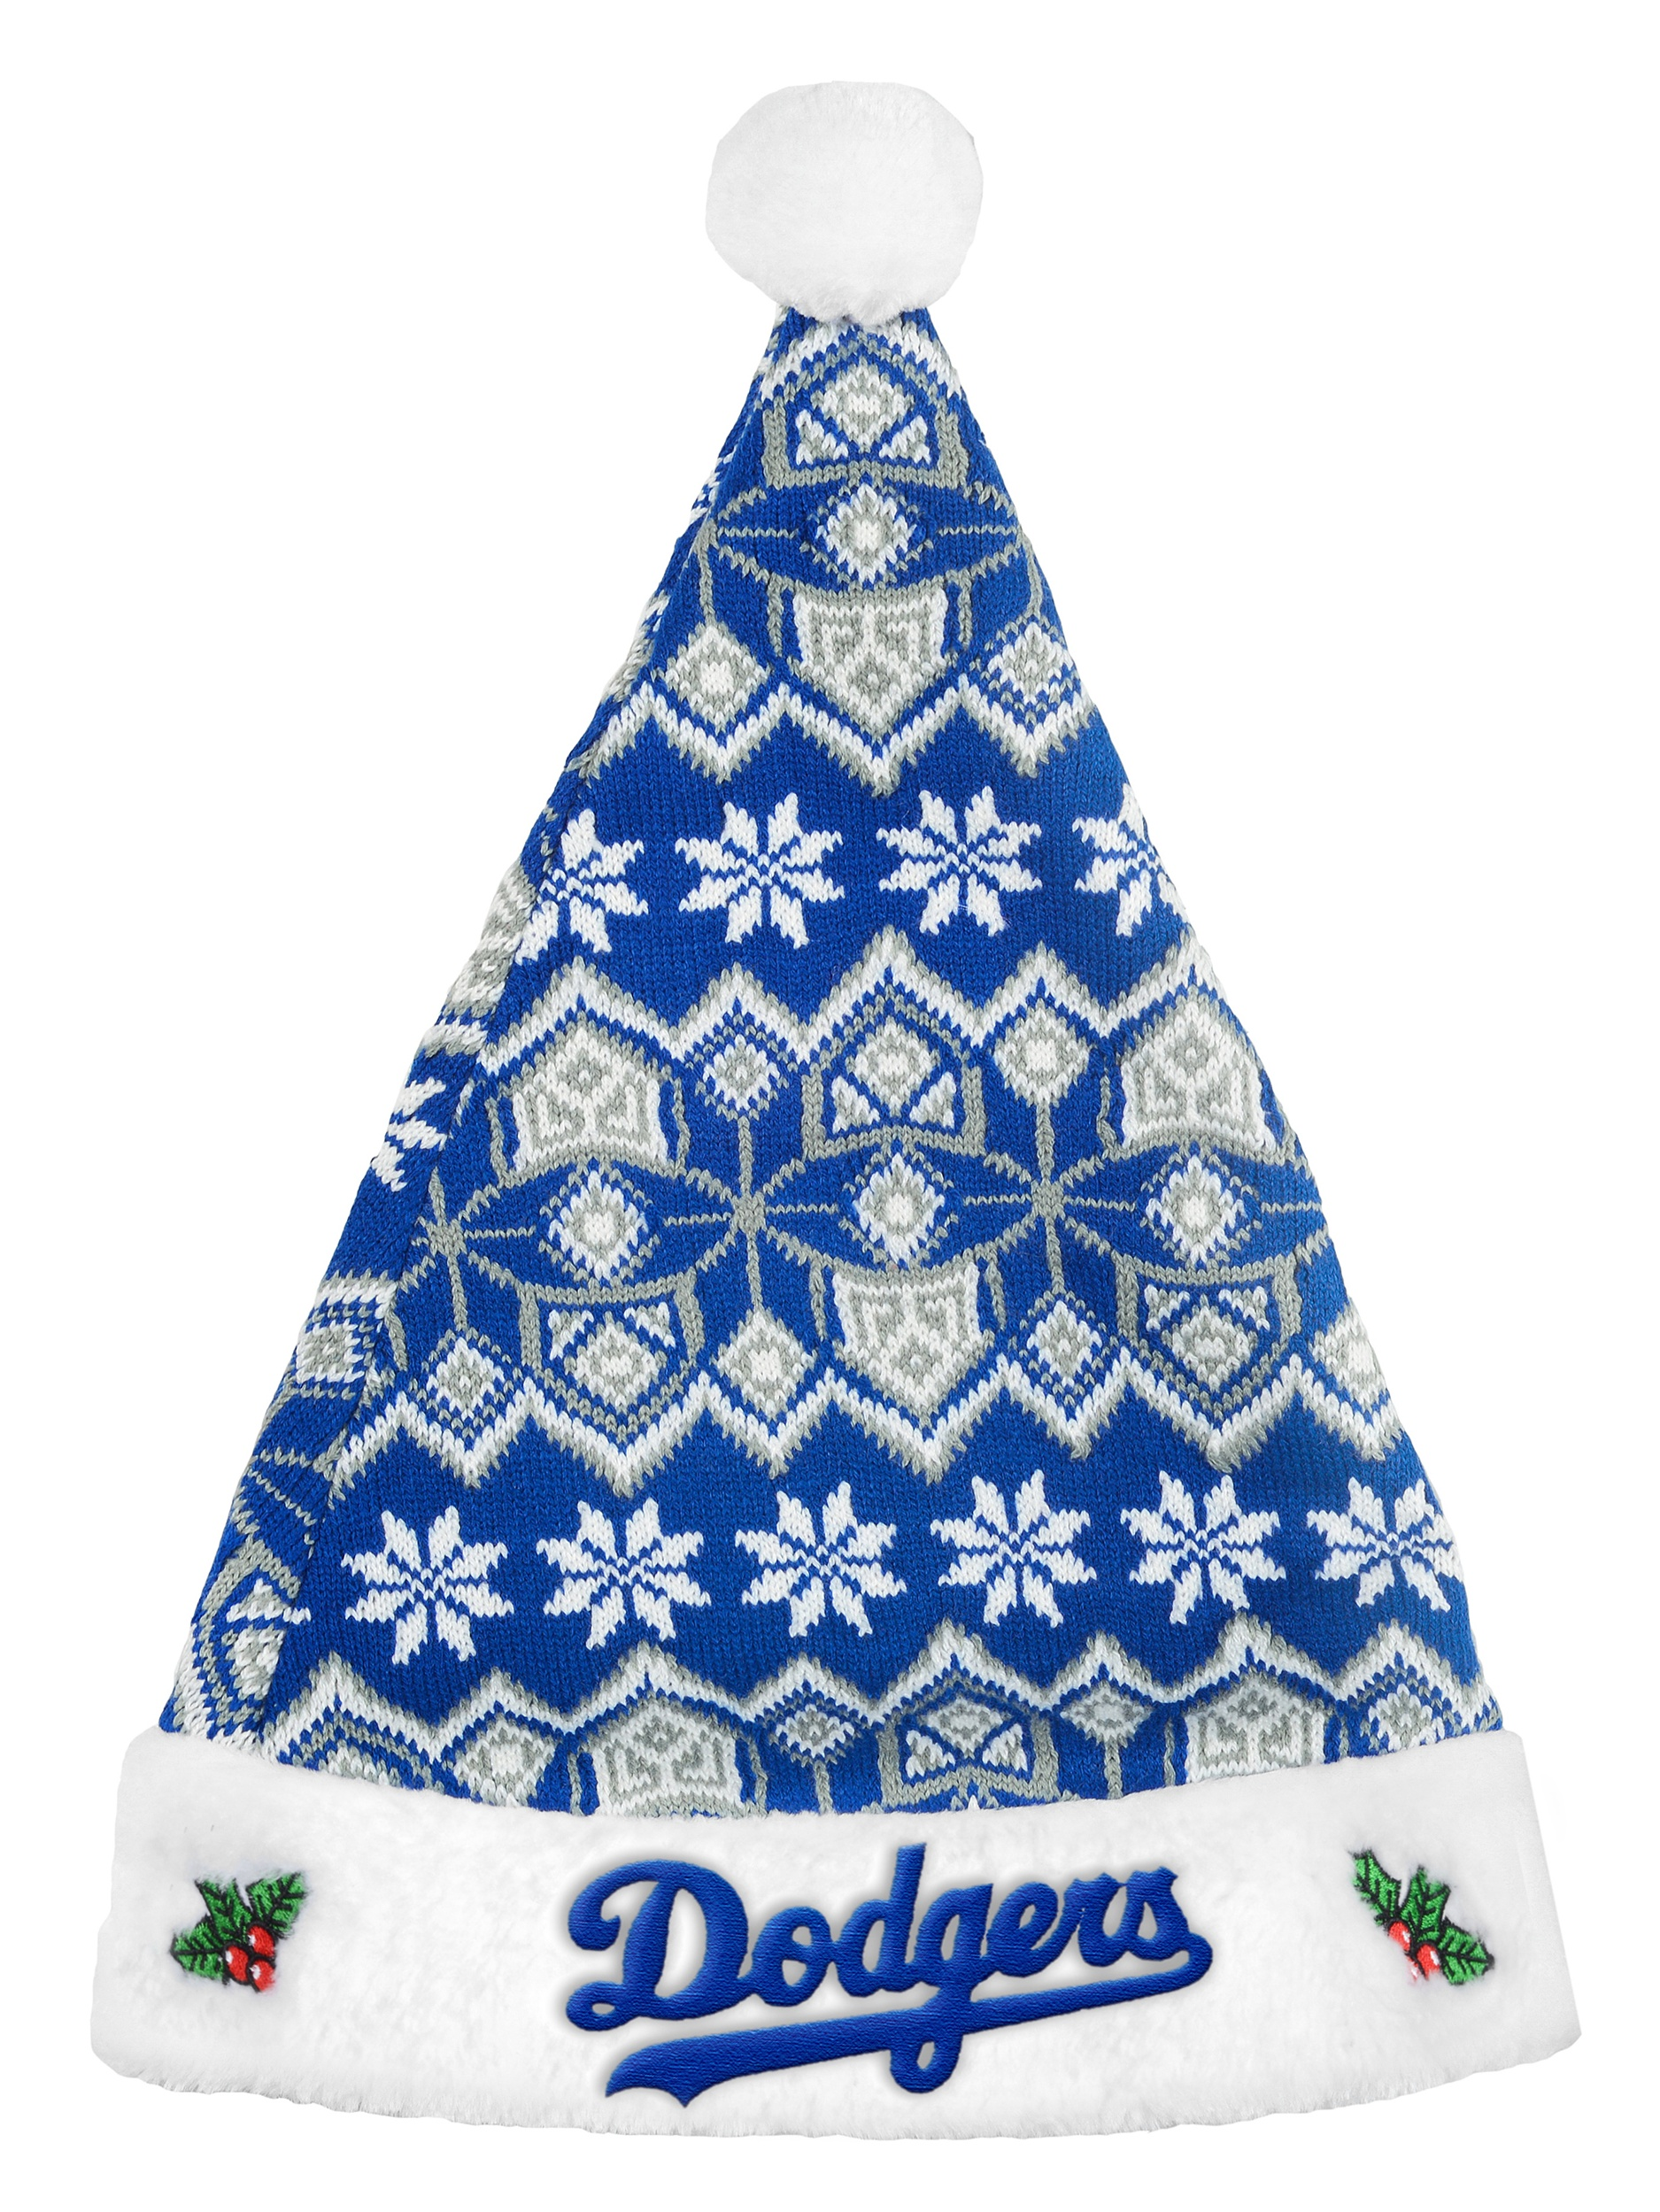 Los Angeles Dodgers Knit Santa Hat 2015 by Forever Collectibles